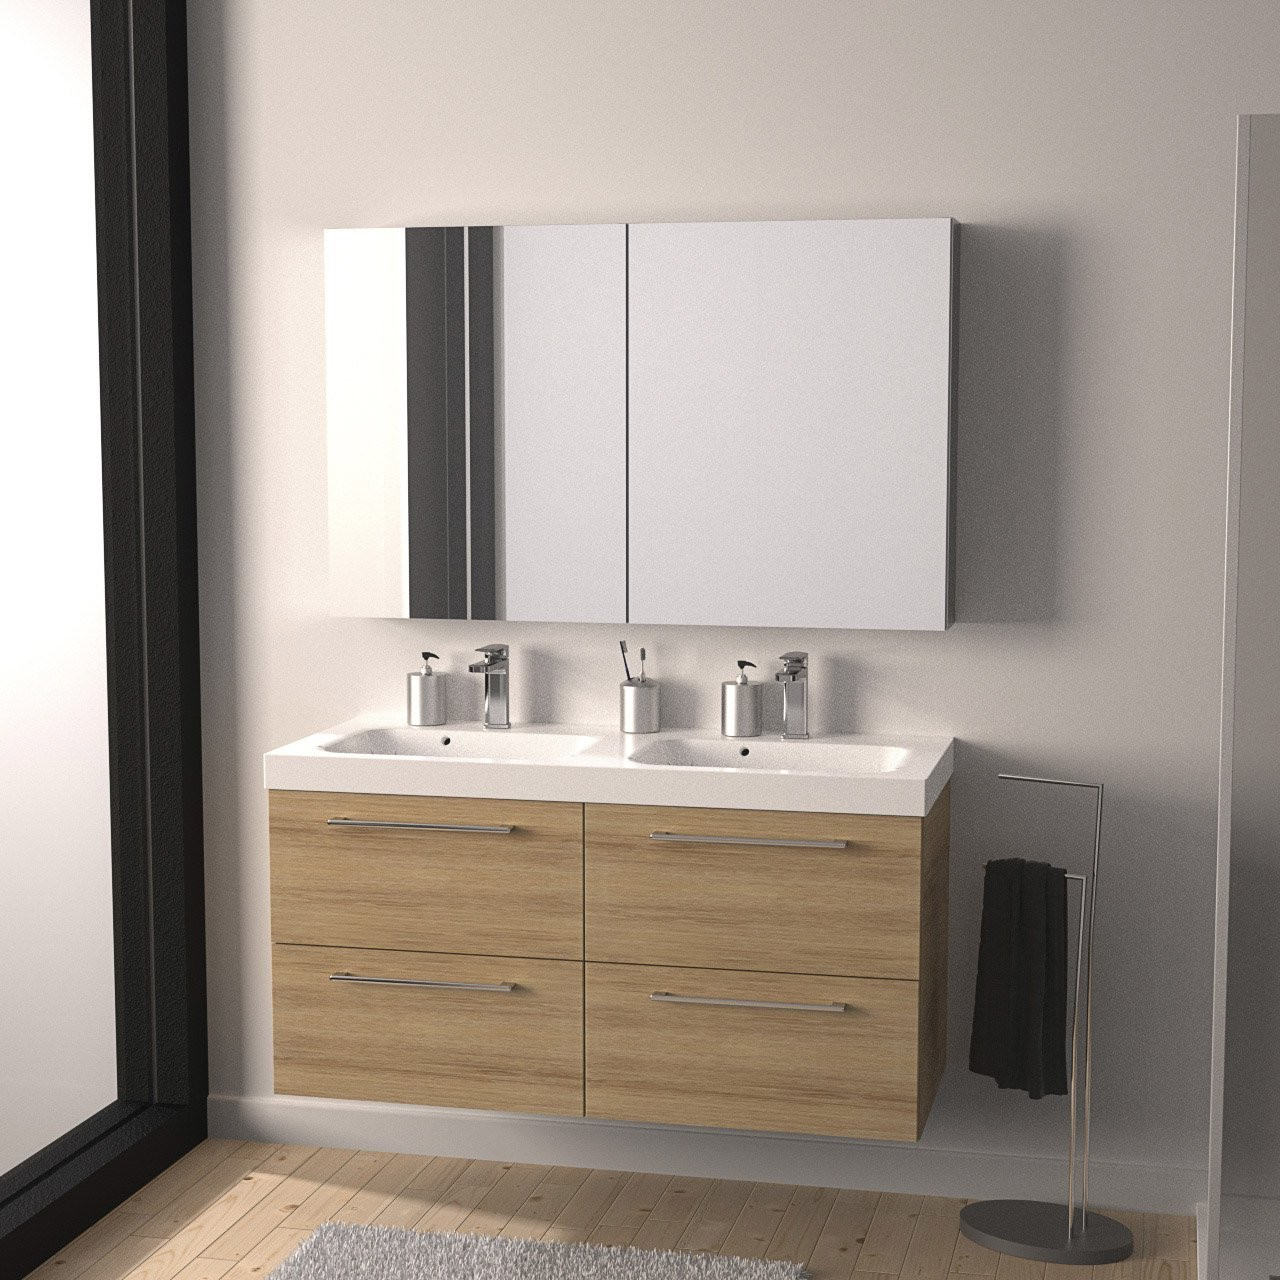 miroir salle de bain leroy merlin salle de bain id es. Black Bedroom Furniture Sets. Home Design Ideas